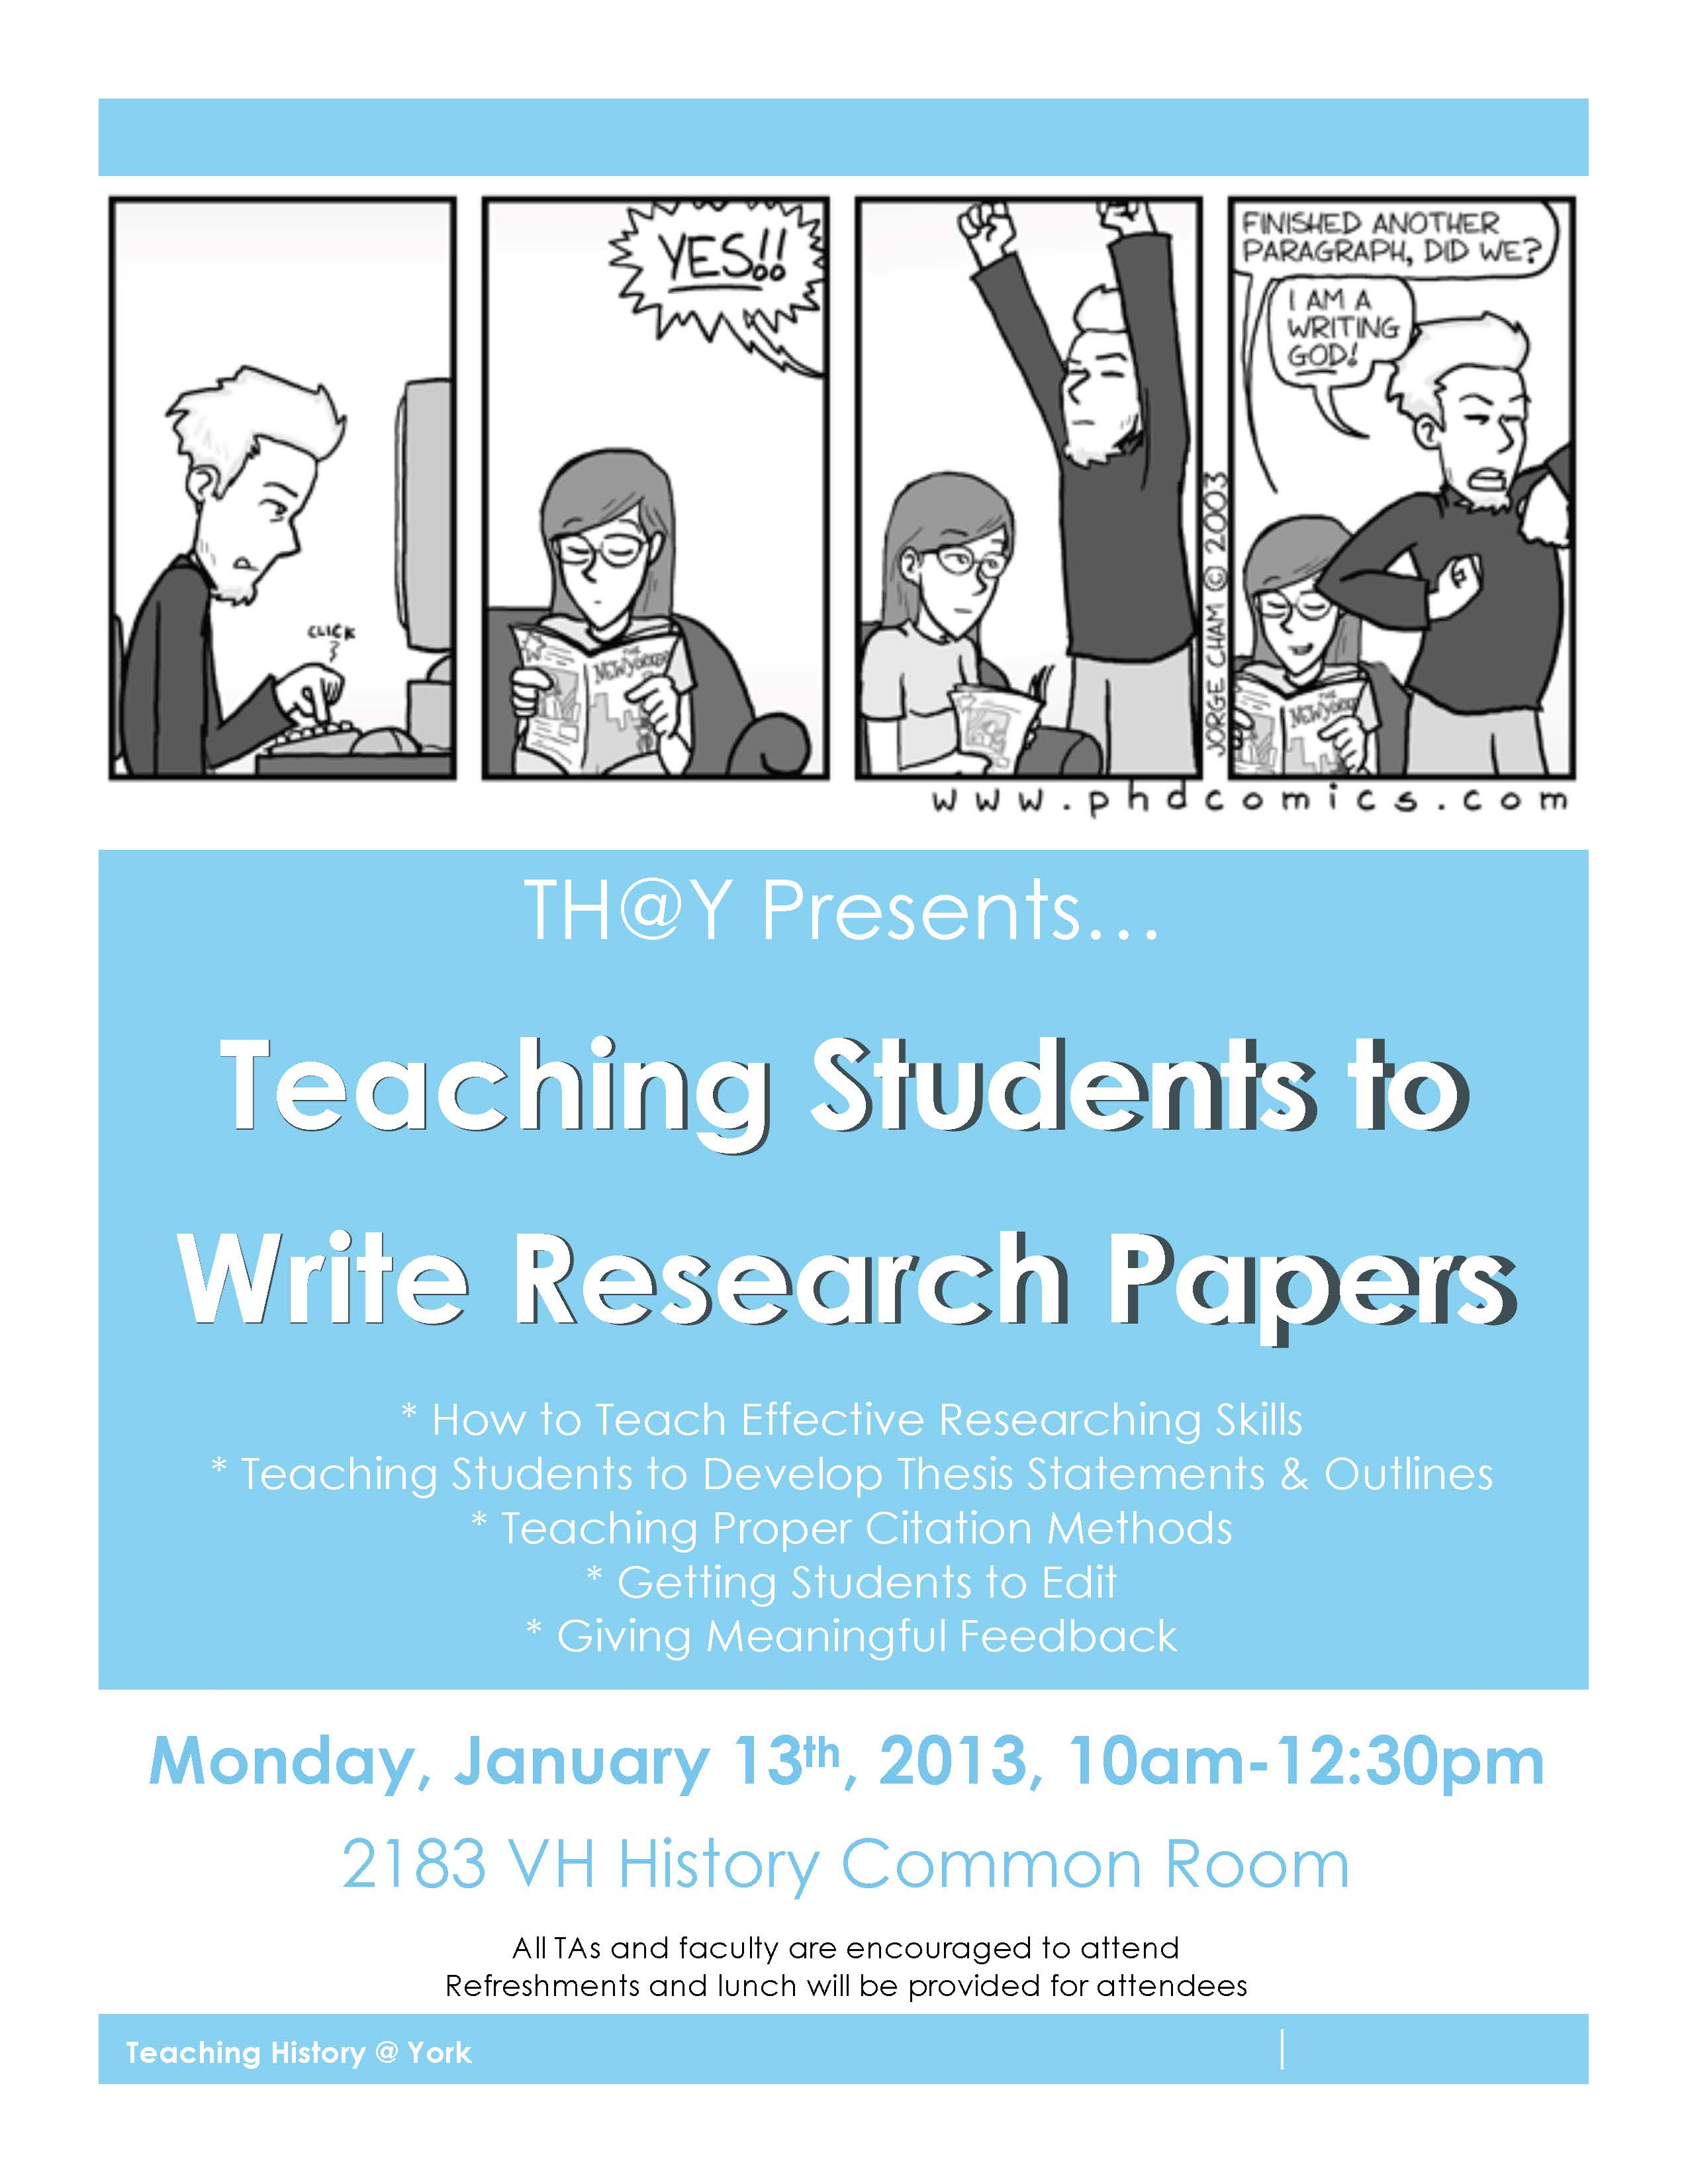 Winter Writing Paper Winter ta day poster image